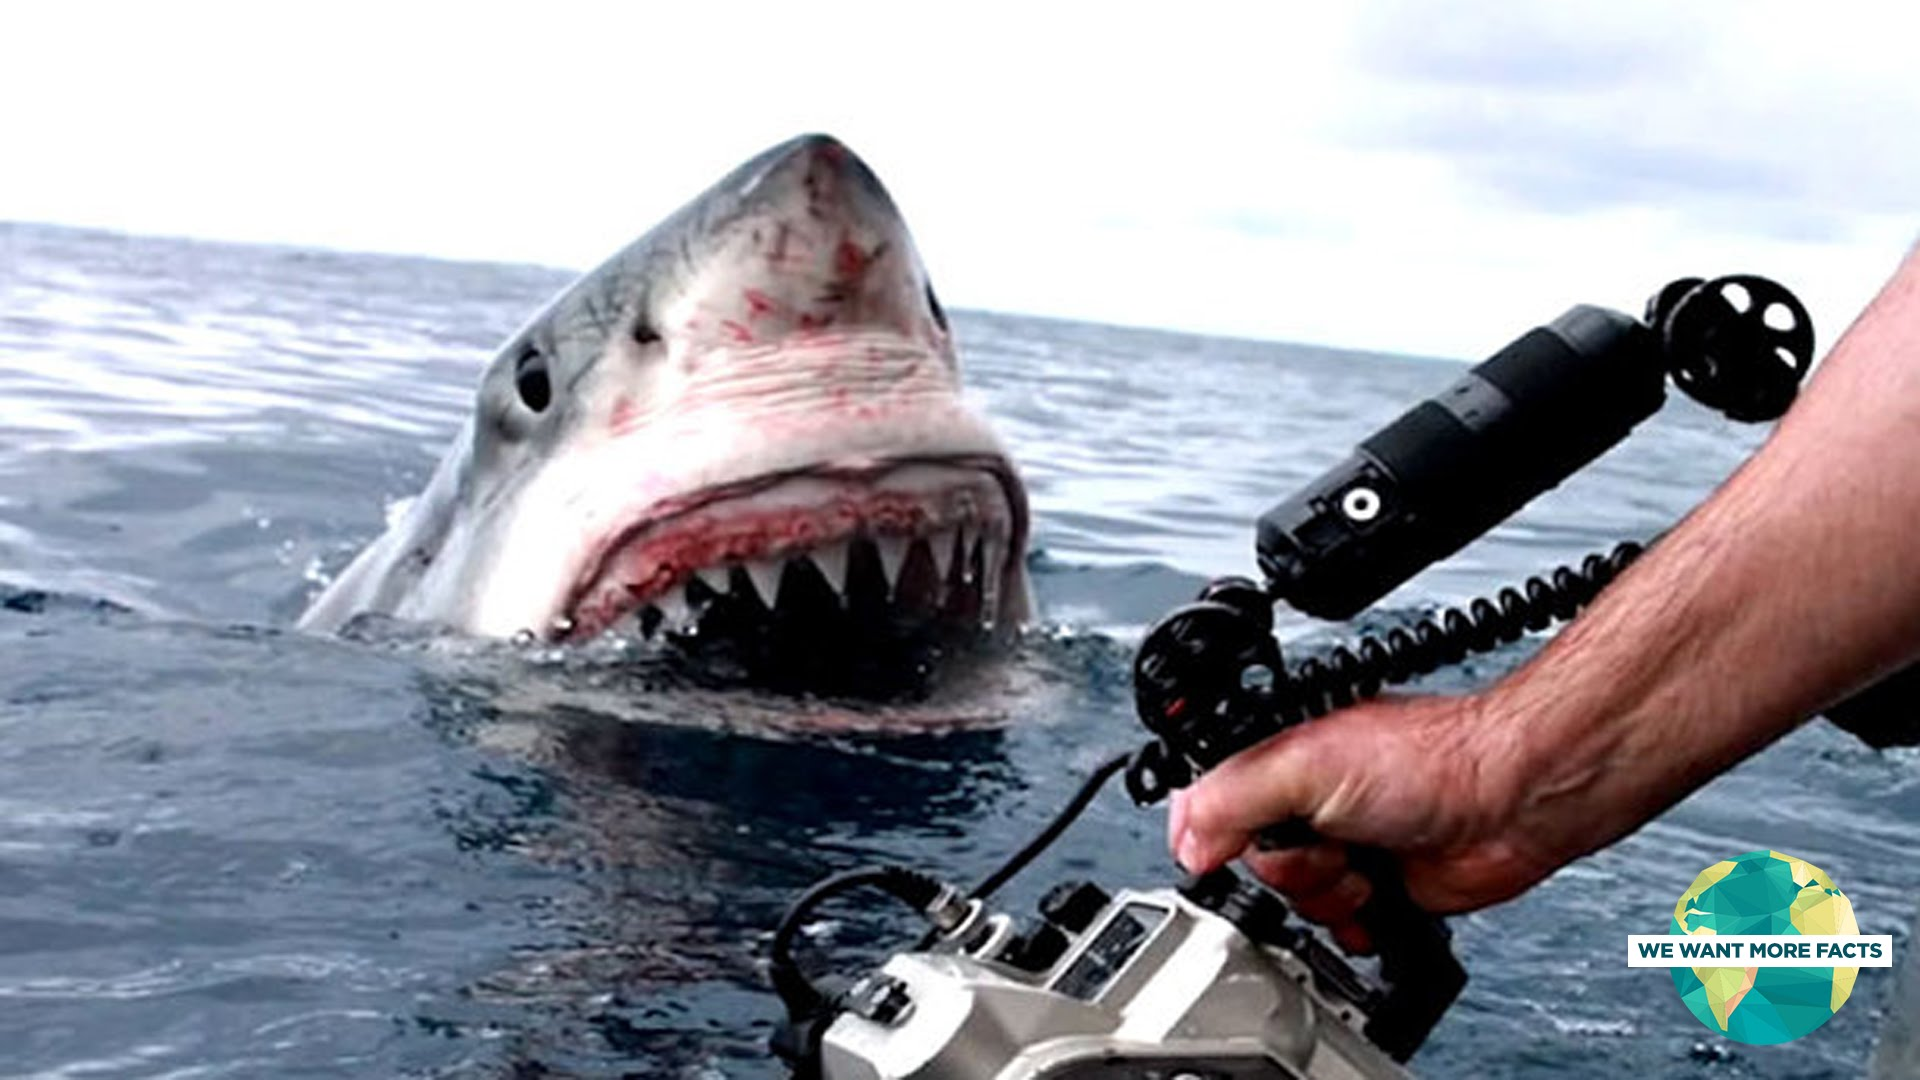 5 Horrifying Shark Encounters Caught On GoPro